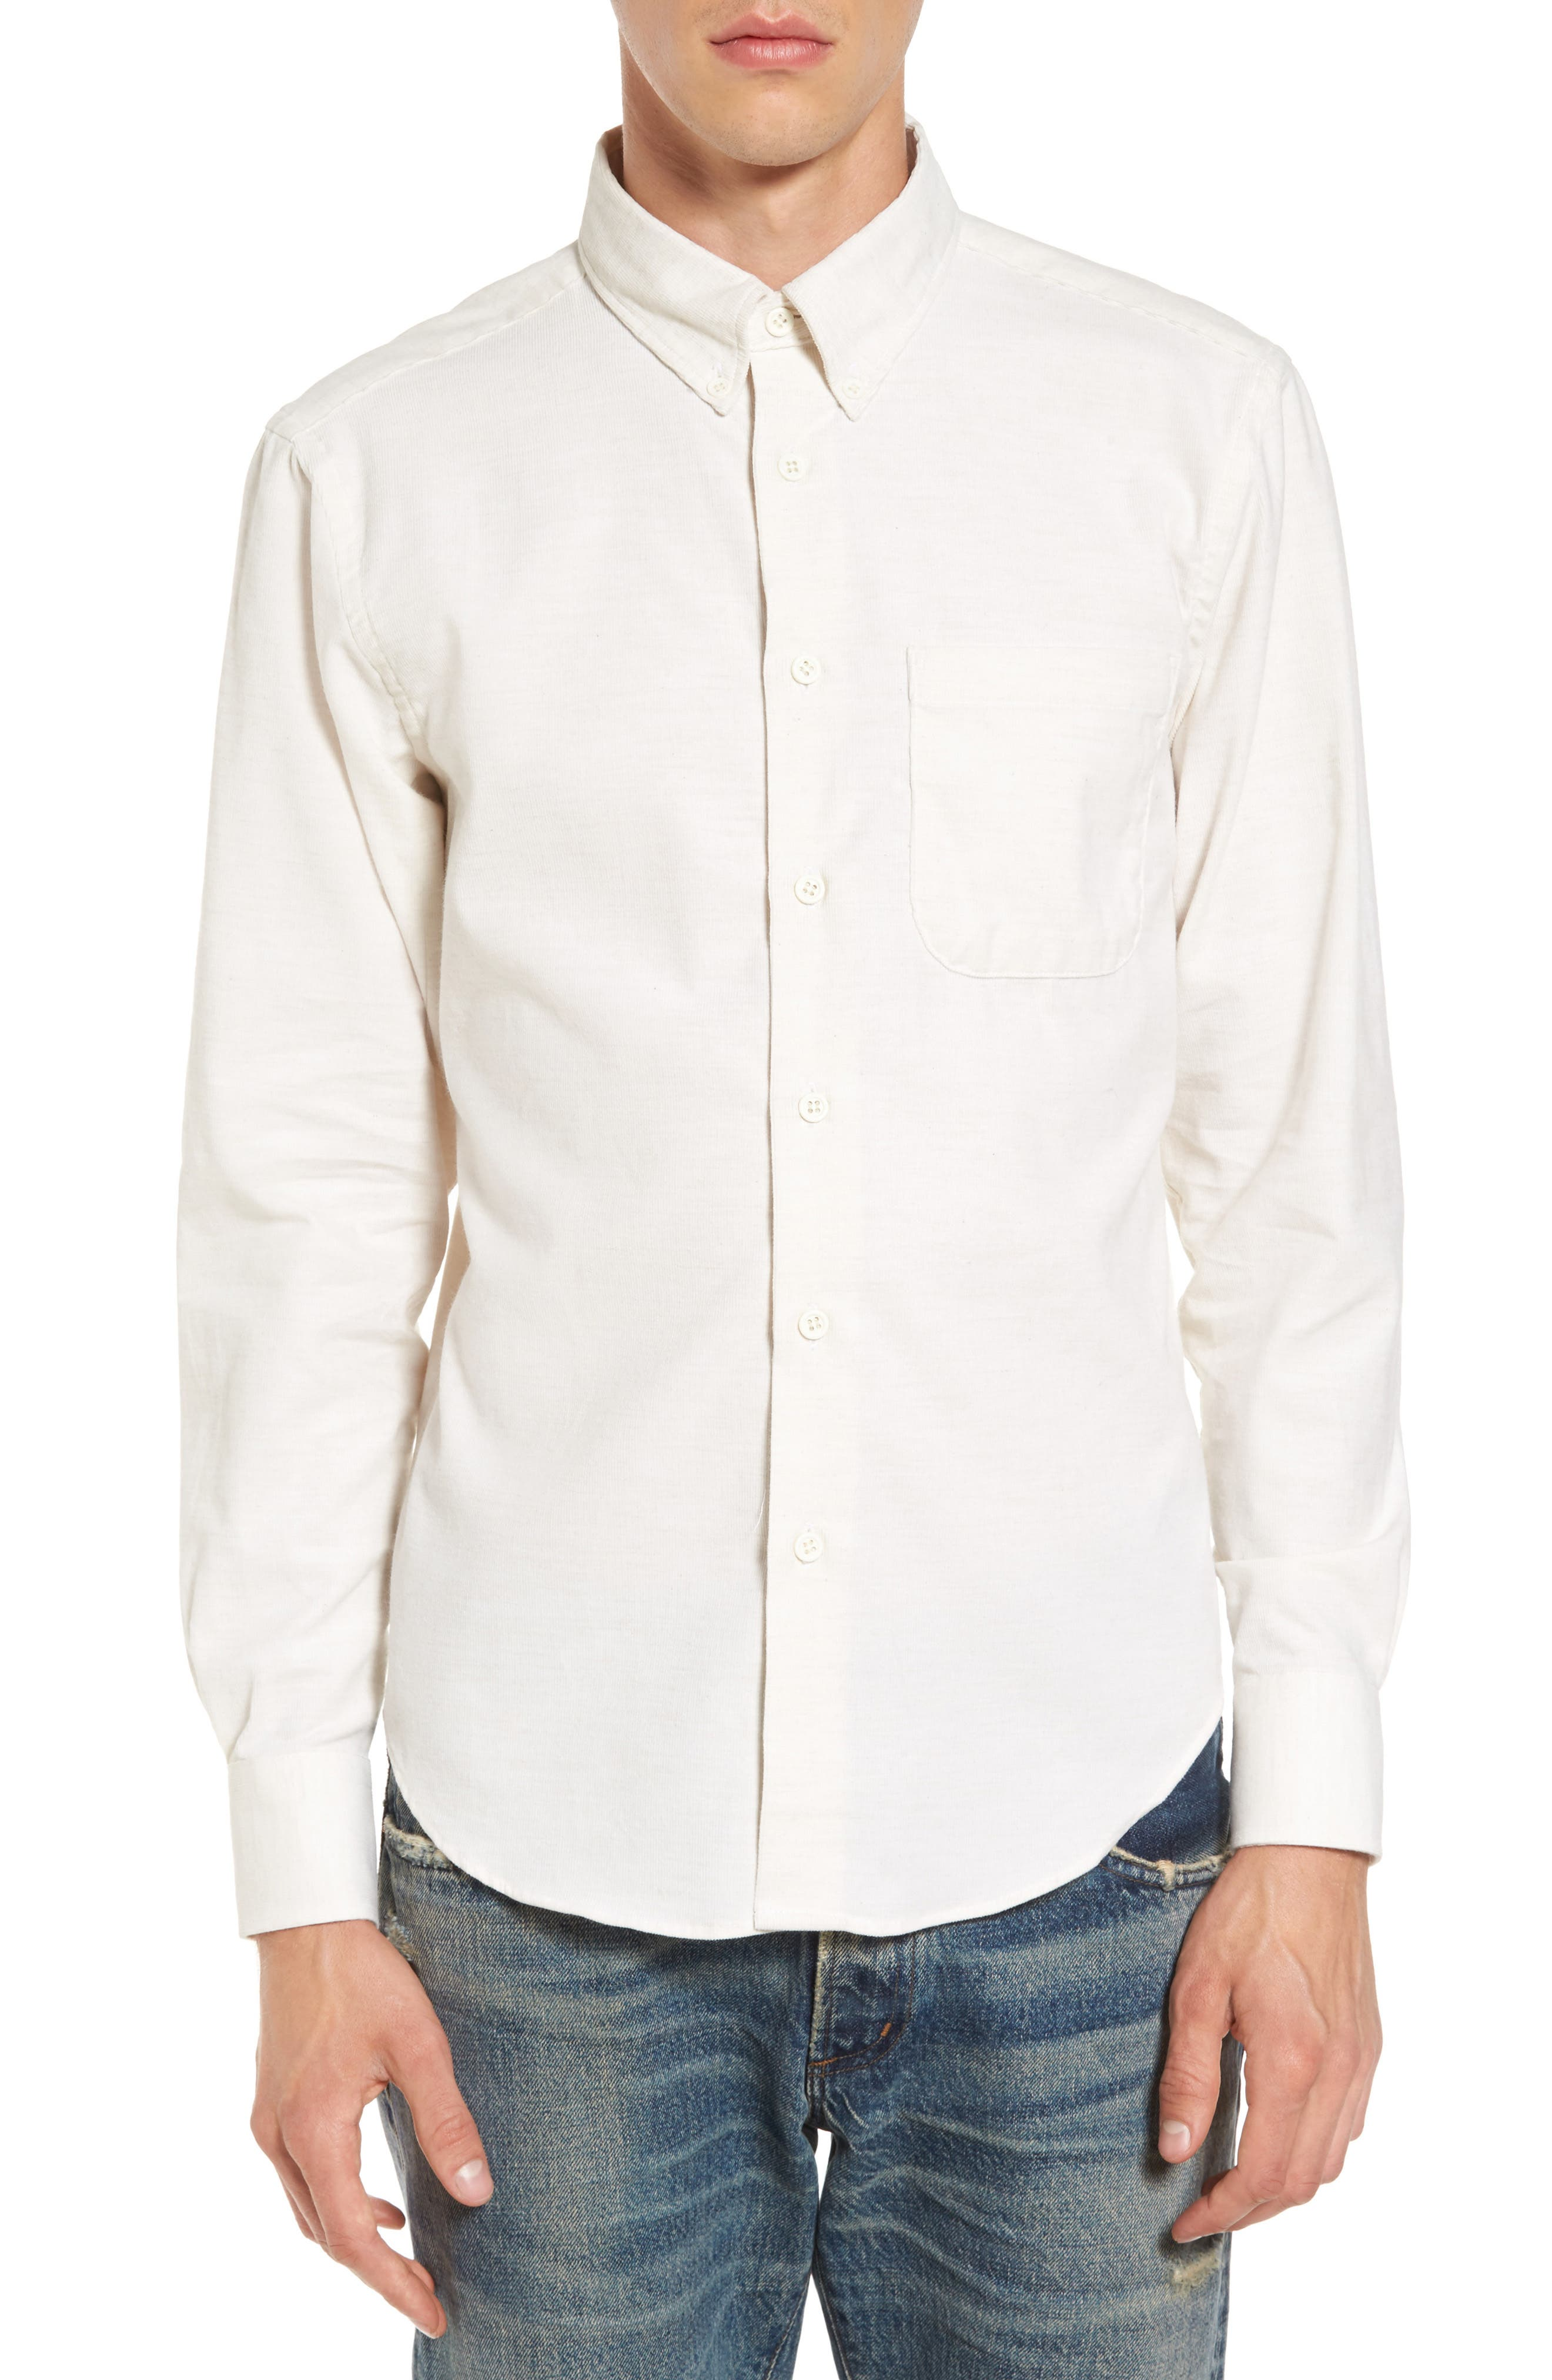 Alternate Image 1 Selected - Naked & Famous Denim Corduroy Button Down Shirt